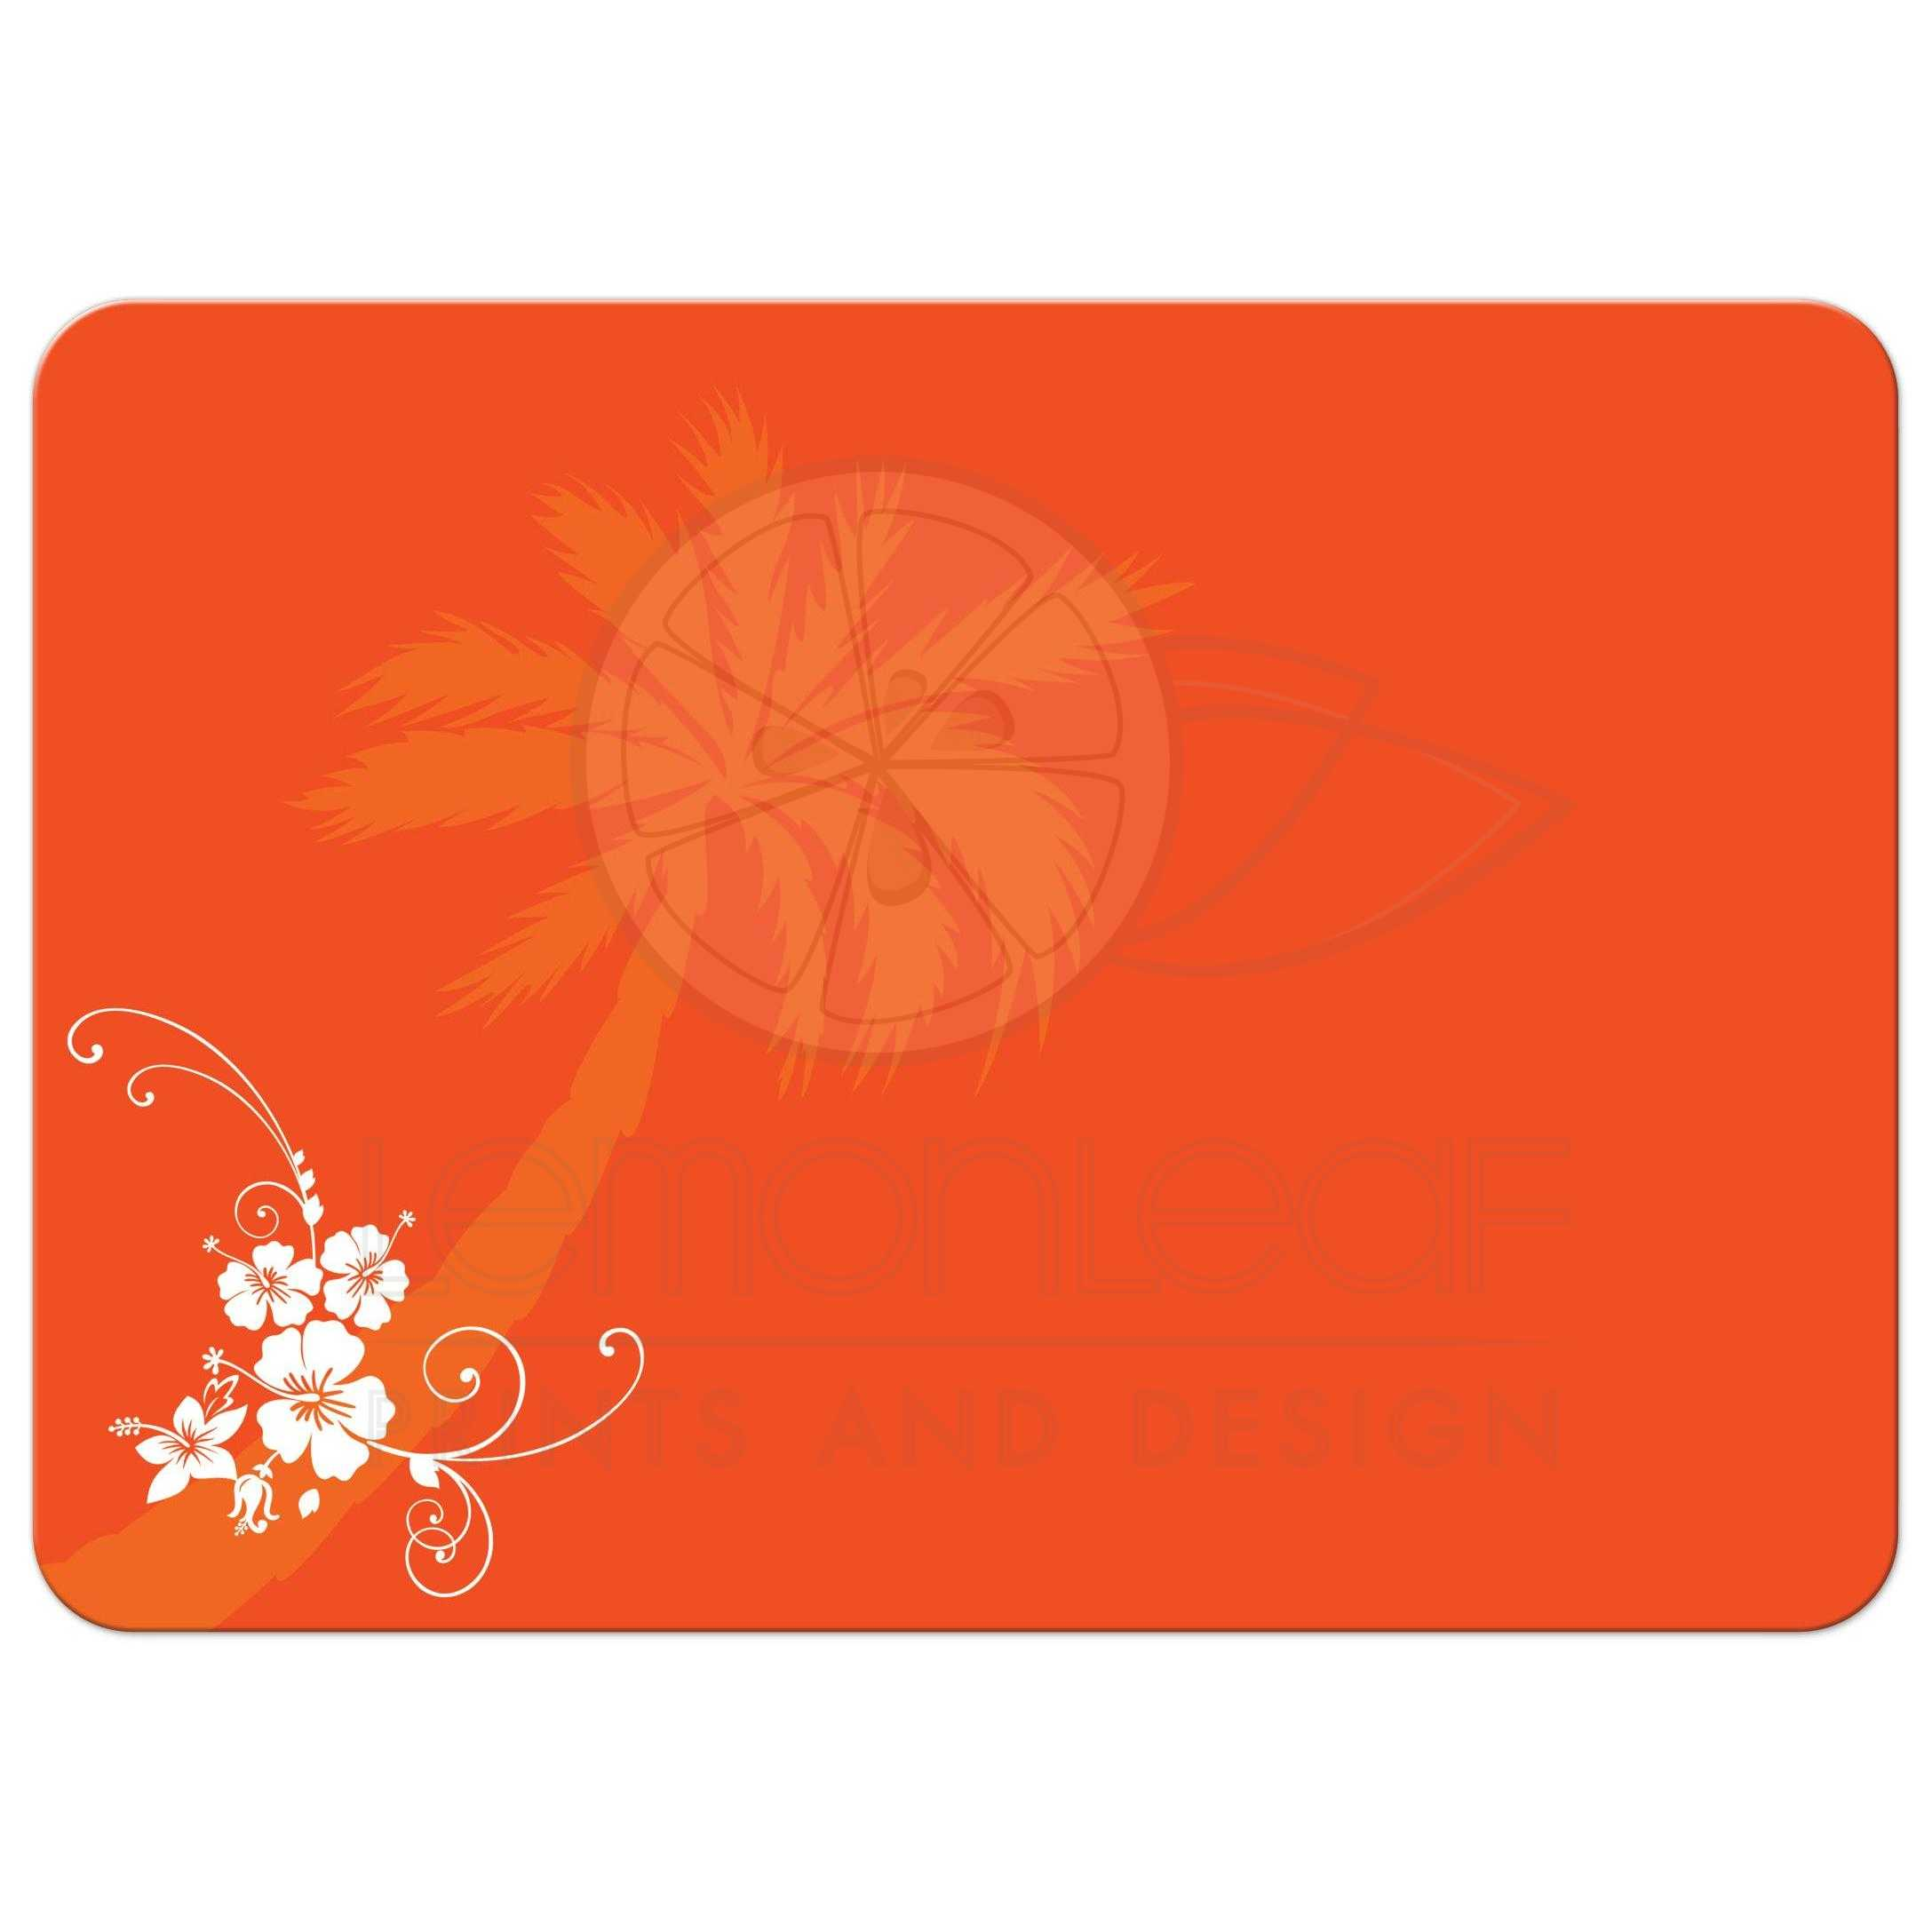 ... Orange And White Tropical Beach Theme Wedding Reception Only Invites  With Scallop